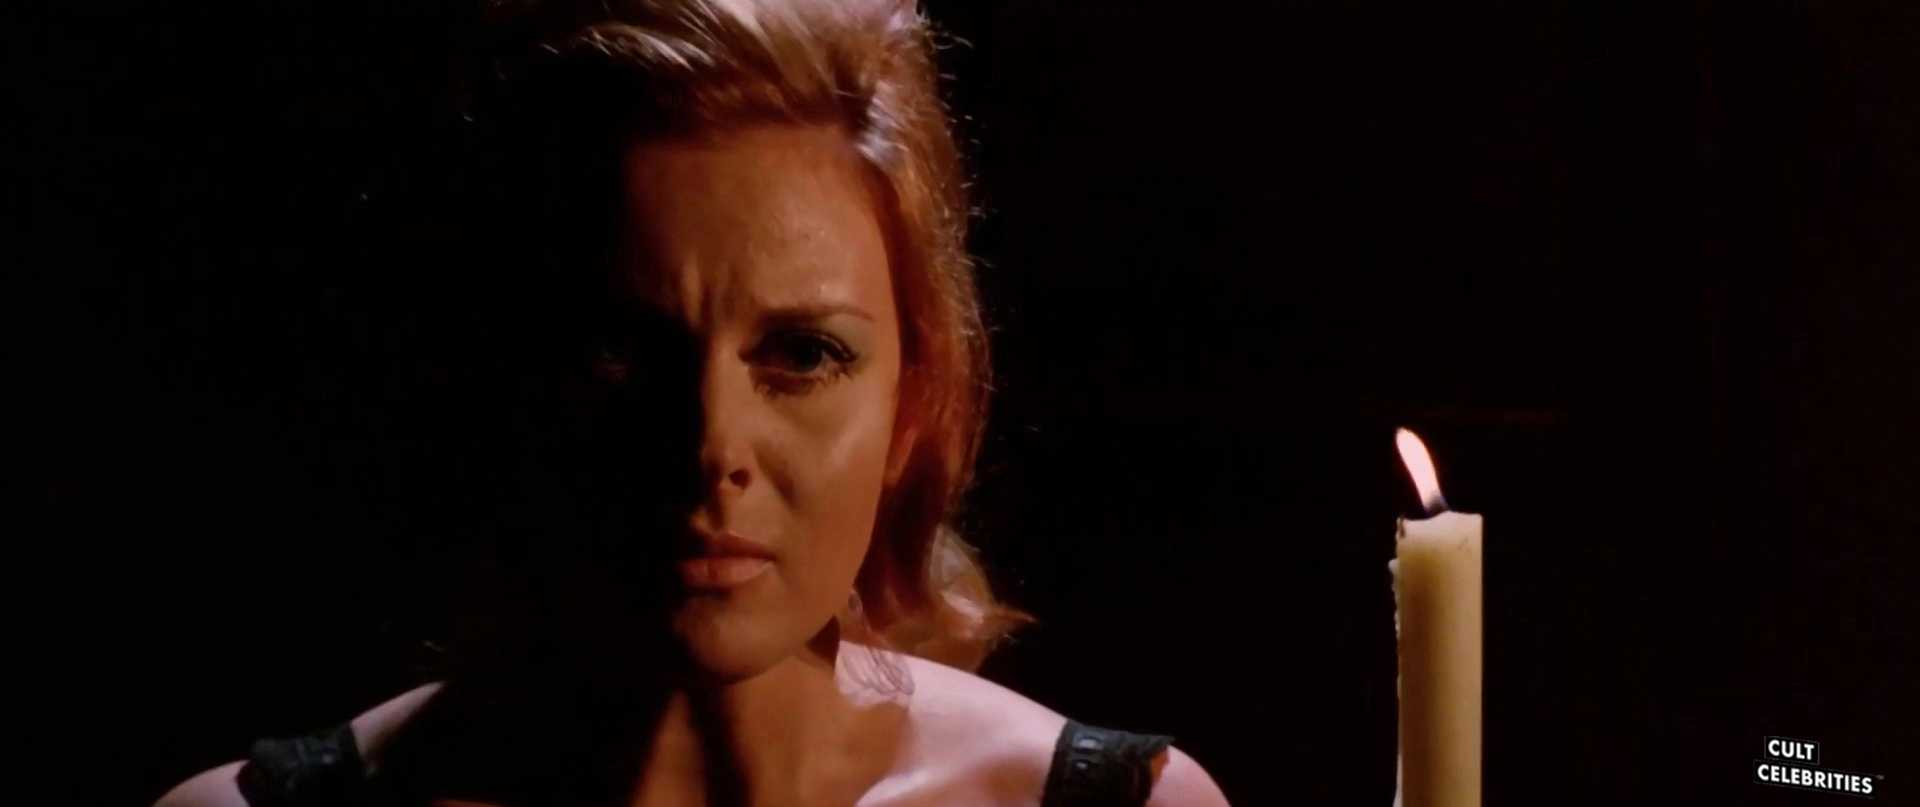 Dagmar Lassander in The Forbidden Photos of a Lady Above Suspicion (1970)